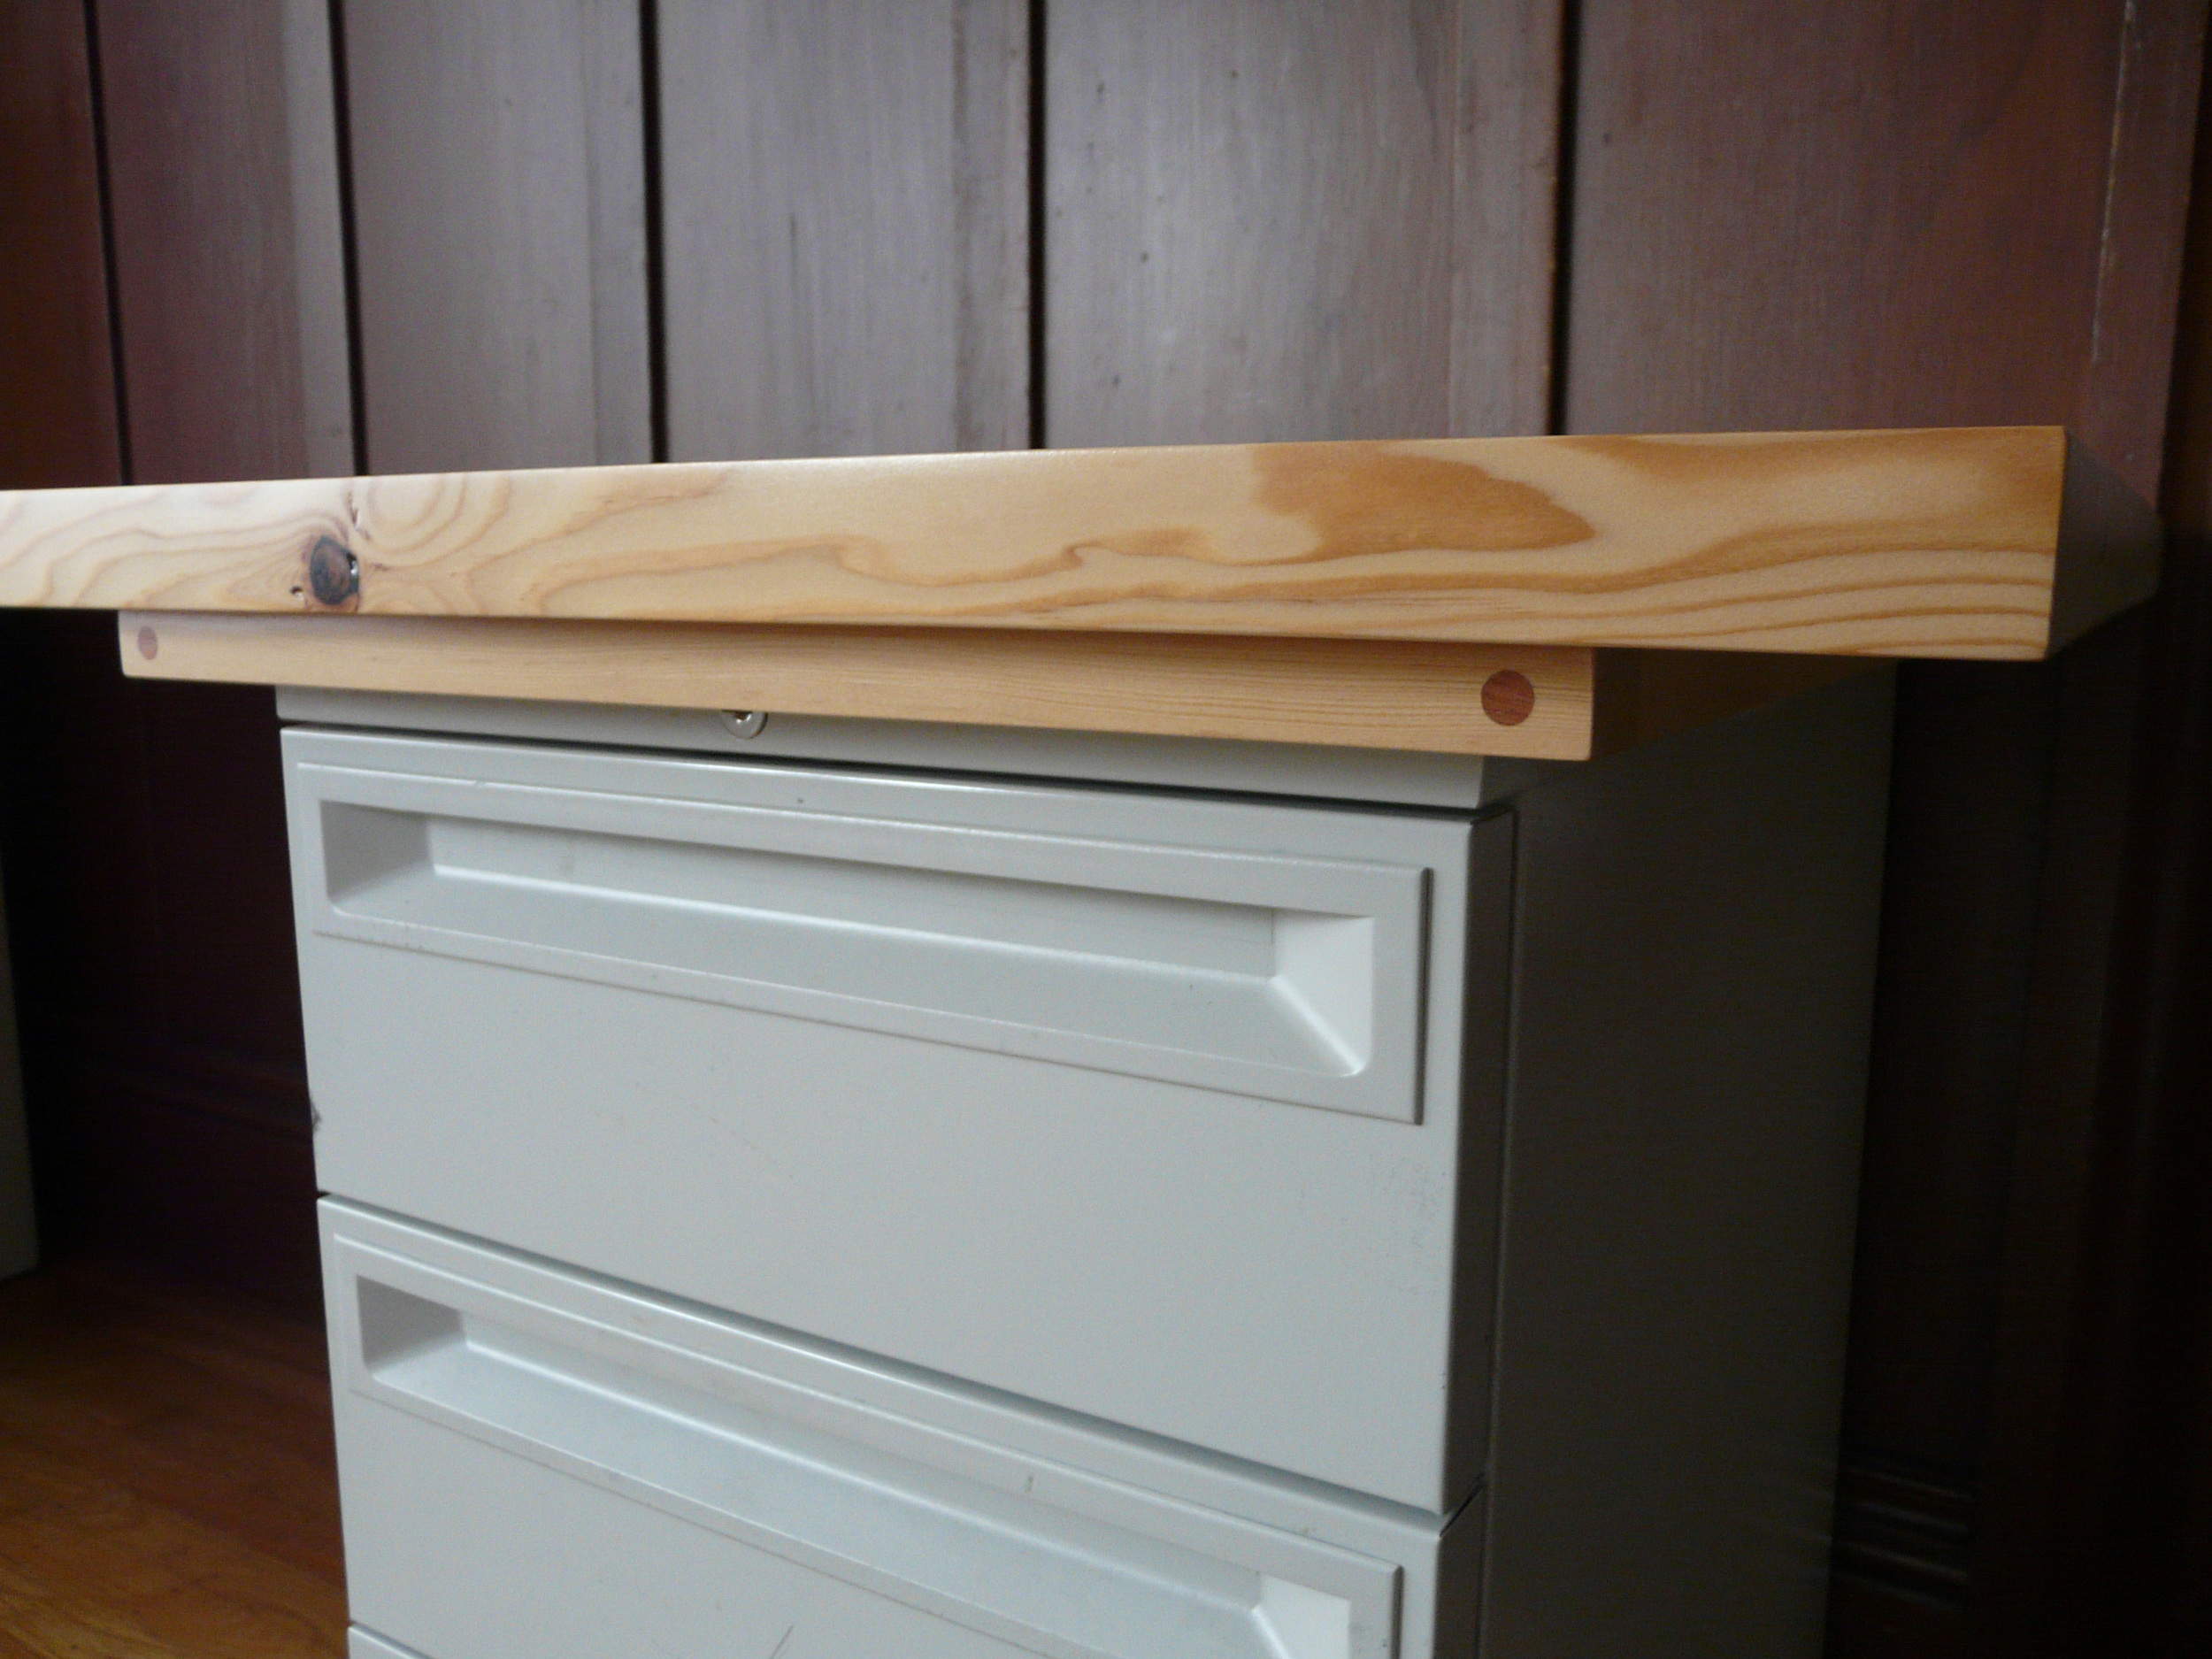 Made a frame to capture the filing cabinet top